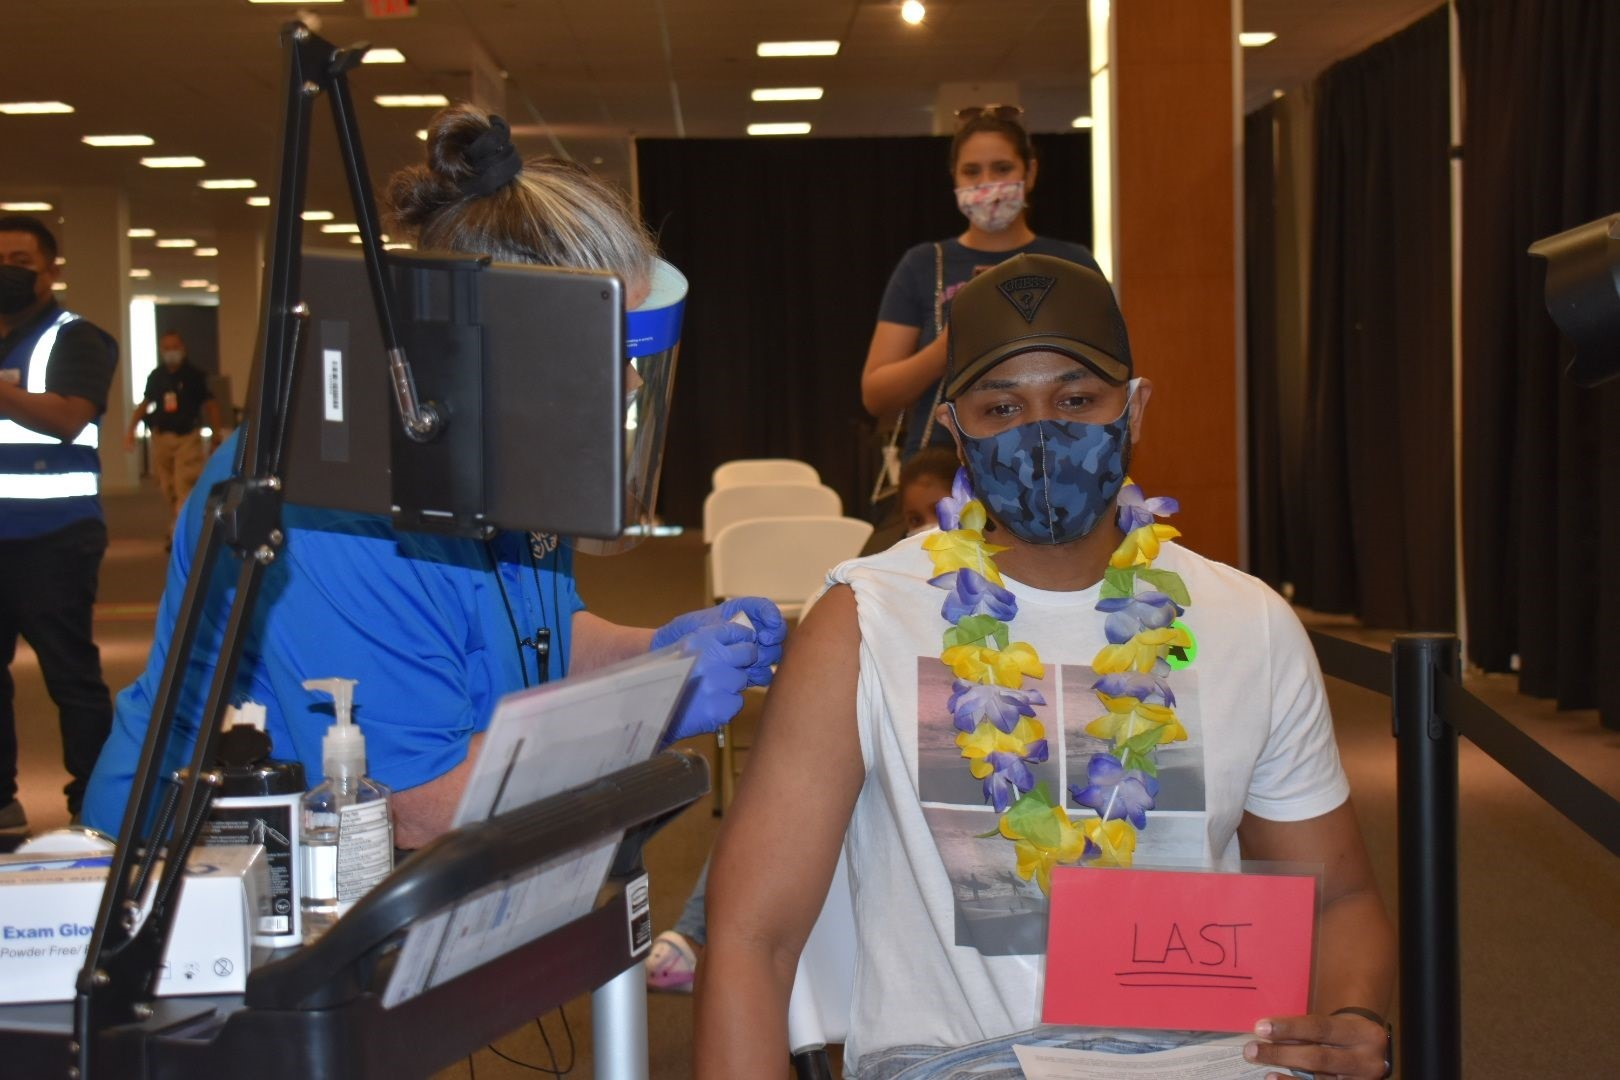 Gregory Picart received the last Covid-19 vaccine dose administered at the Vaccinate Lancaster Community Vaccination Center on Wednesday, June 30, 2021. (Source: Vaccinate Lancaster Coalition)